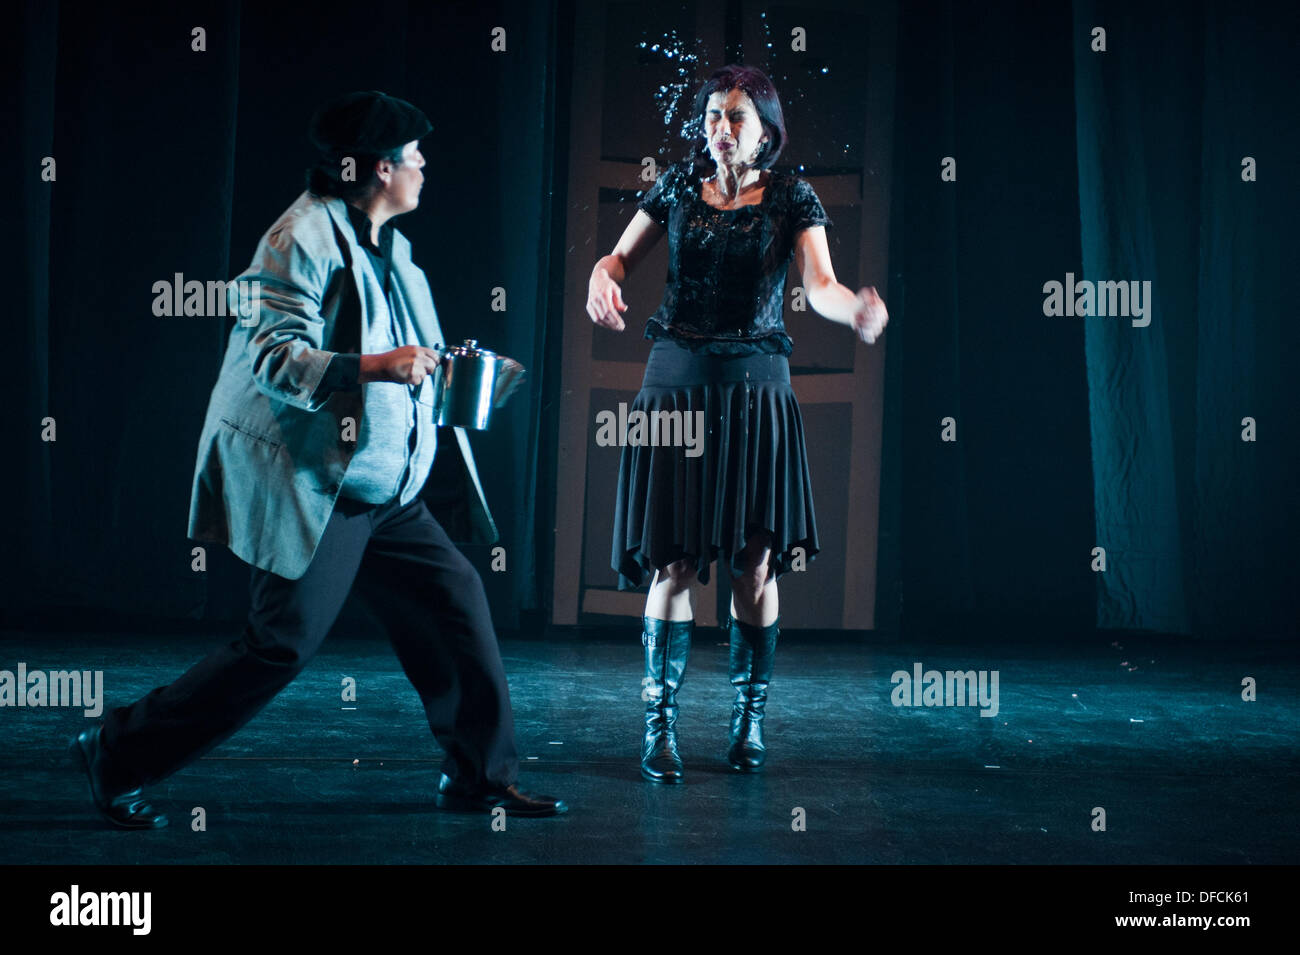 London, UK - 2 October 2013: performers of the Bolivian company Teatro de los Andes transpose Hamlet to Bolivia Stock Photo